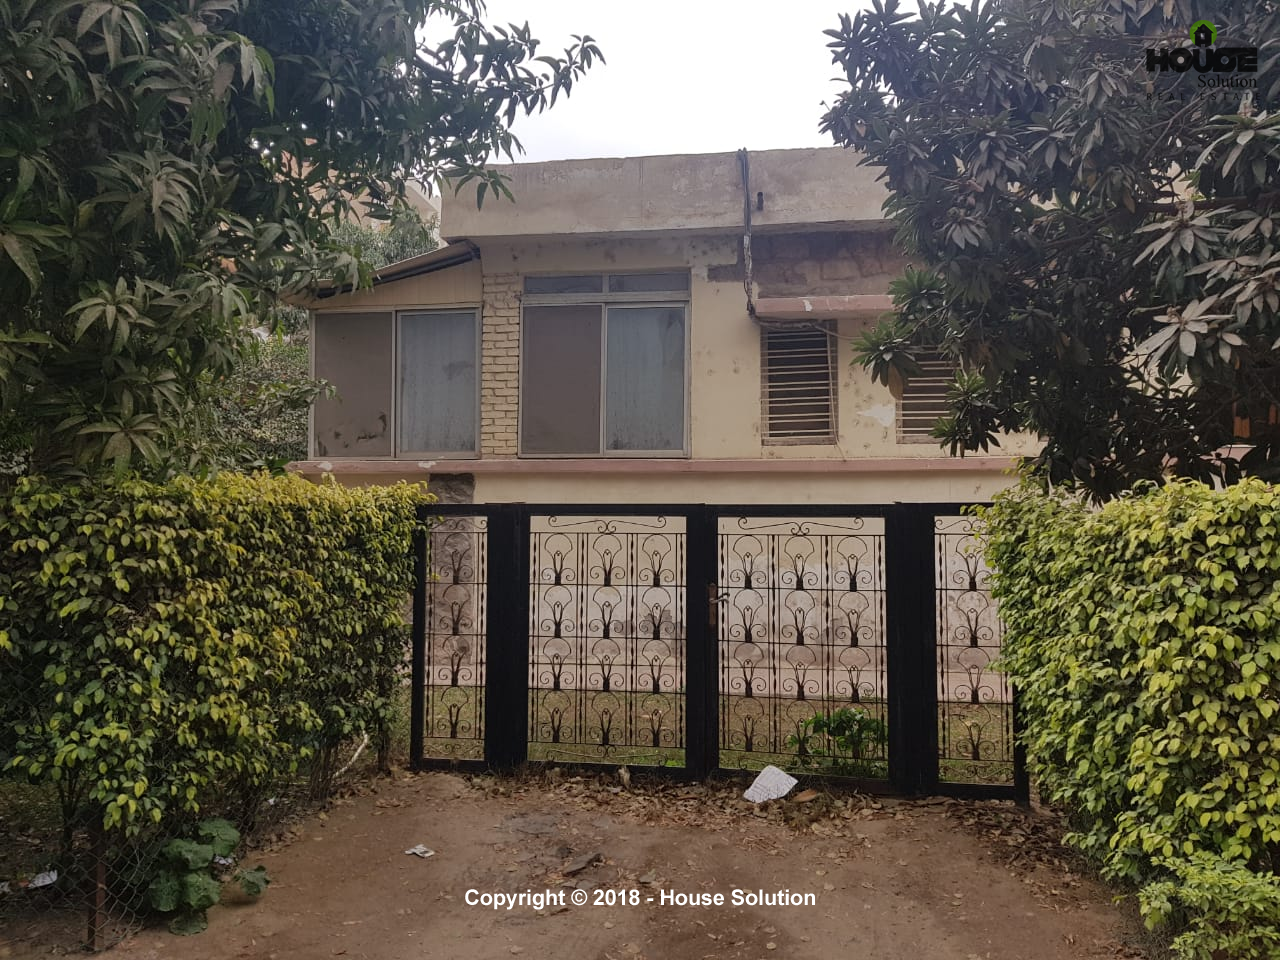 Villas For Sale In Maadi Maadi Degla -#4